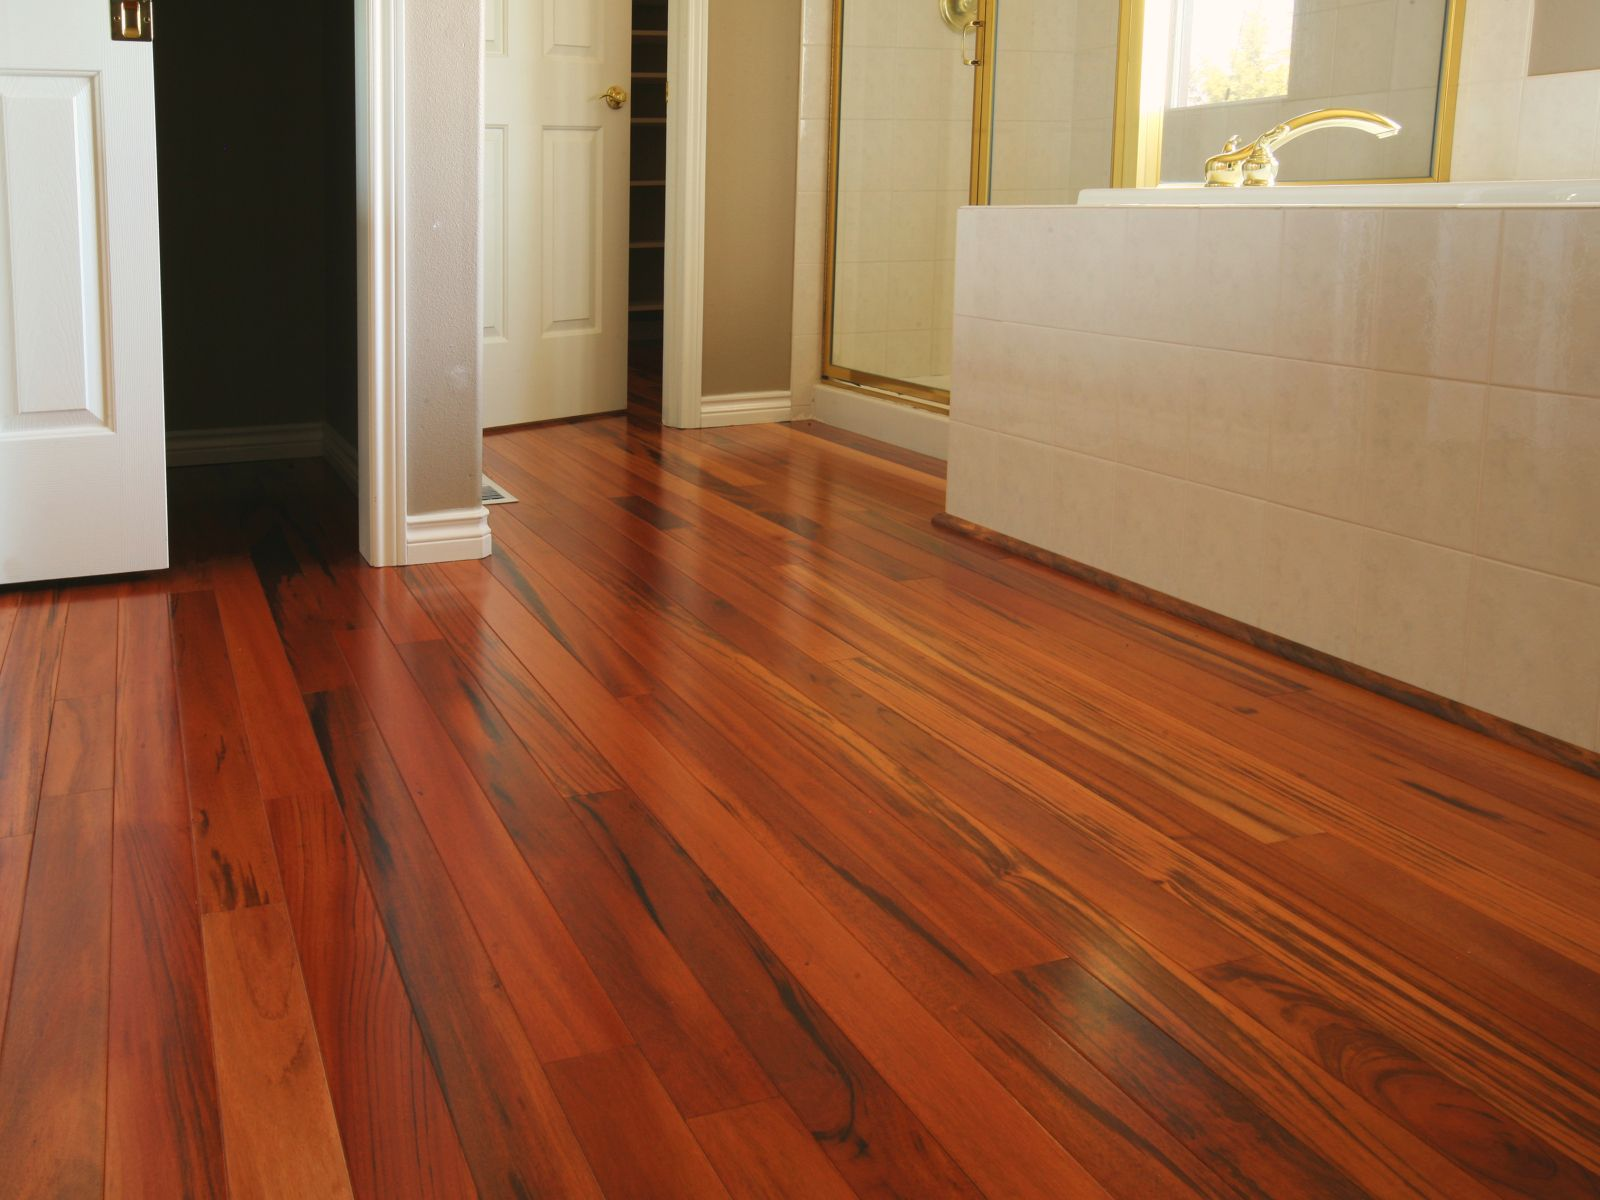 What Is The Price Of Hardwood Flooring Bamboo Wood Flooring Cleaning Wood Floors Beautiful Flooring